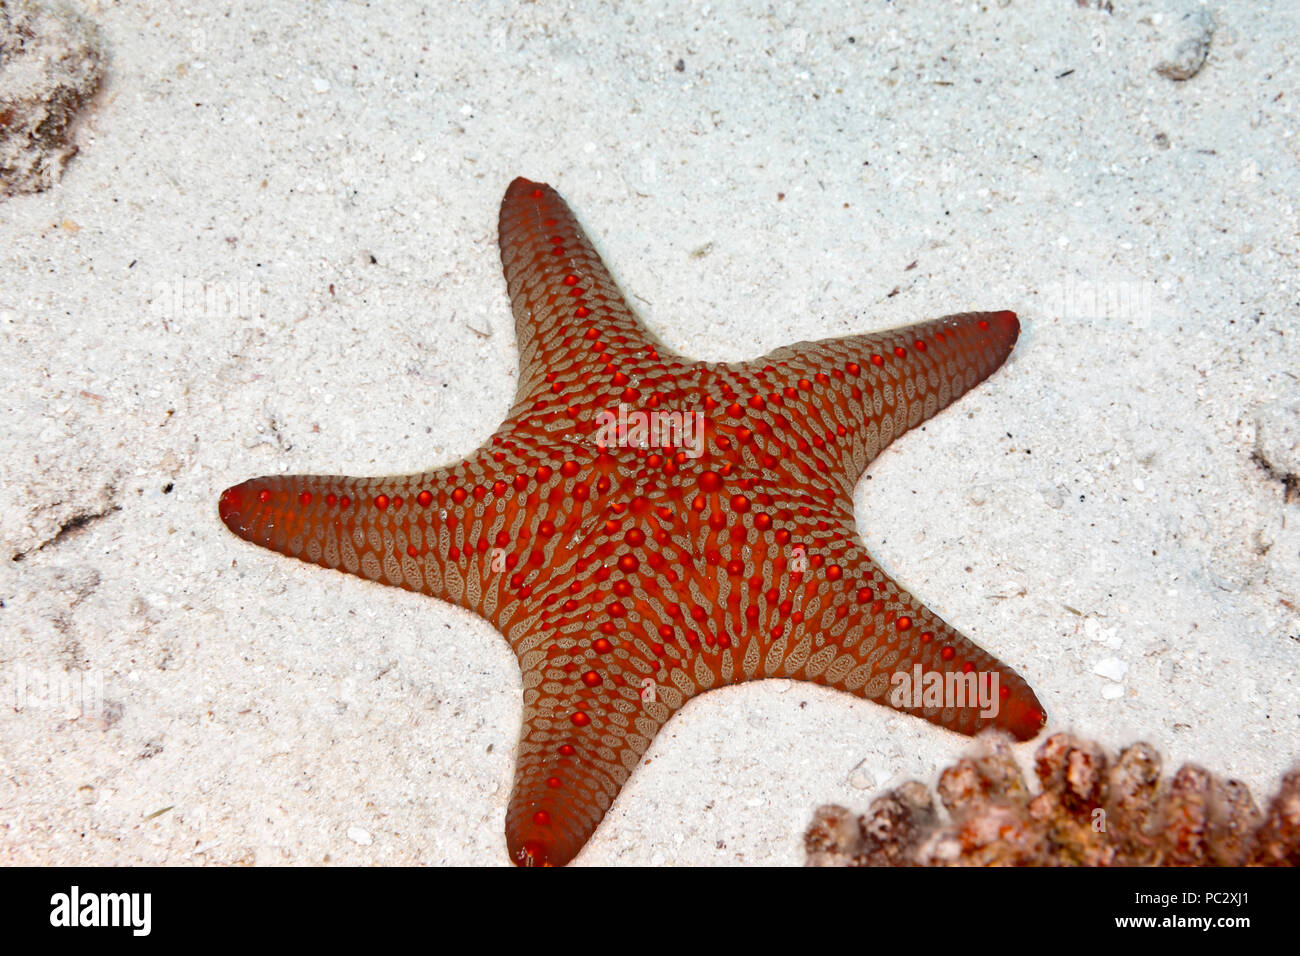 Knobby seastar, Pentaceraster cumingi, also known as a Panamic Cushion Sea Star, is usually found well below 100 feet, Hawaii. - Stock Image